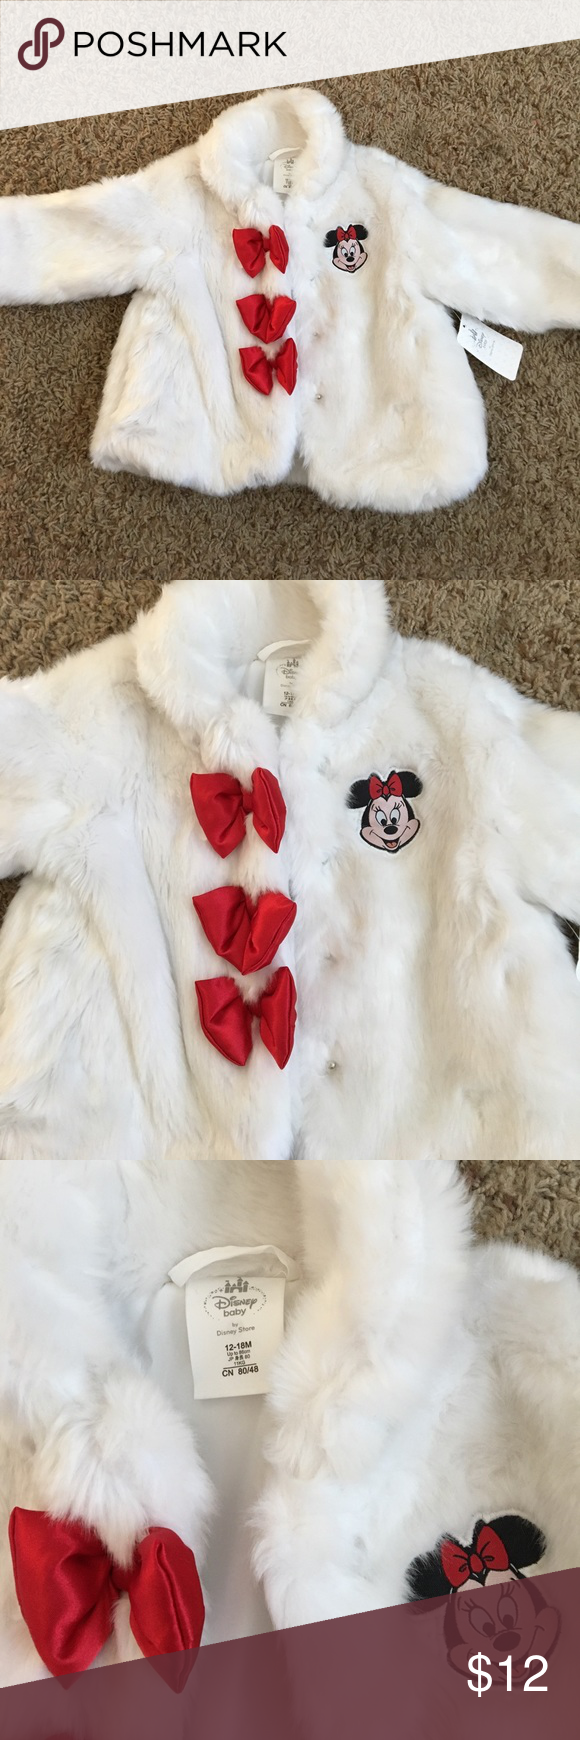 32c3582852b Disney Baby Minnie Mouse Faux Fur Coat NEVER BEEN WORN Faux Fur Minnie Mouse  White Coat with Red Bow Button Embellishments with Minnie Patch sewn on the  ...